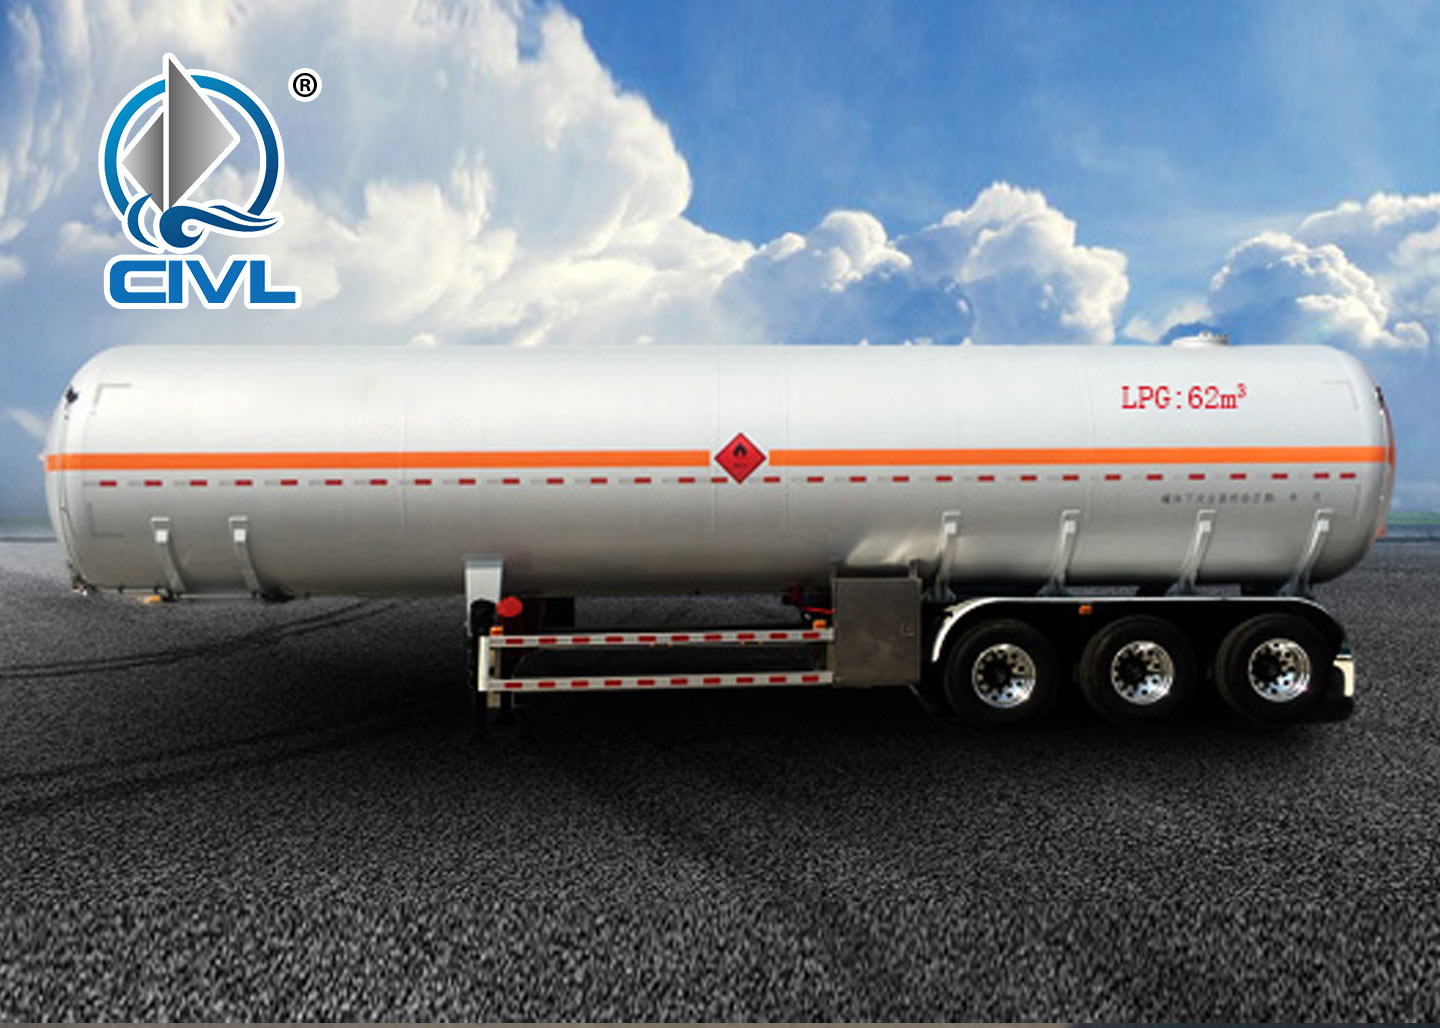 62m3 LPG Trailer Semi Trailer Trucks Stainless Steel For Lpg Transport Liquefied Gas